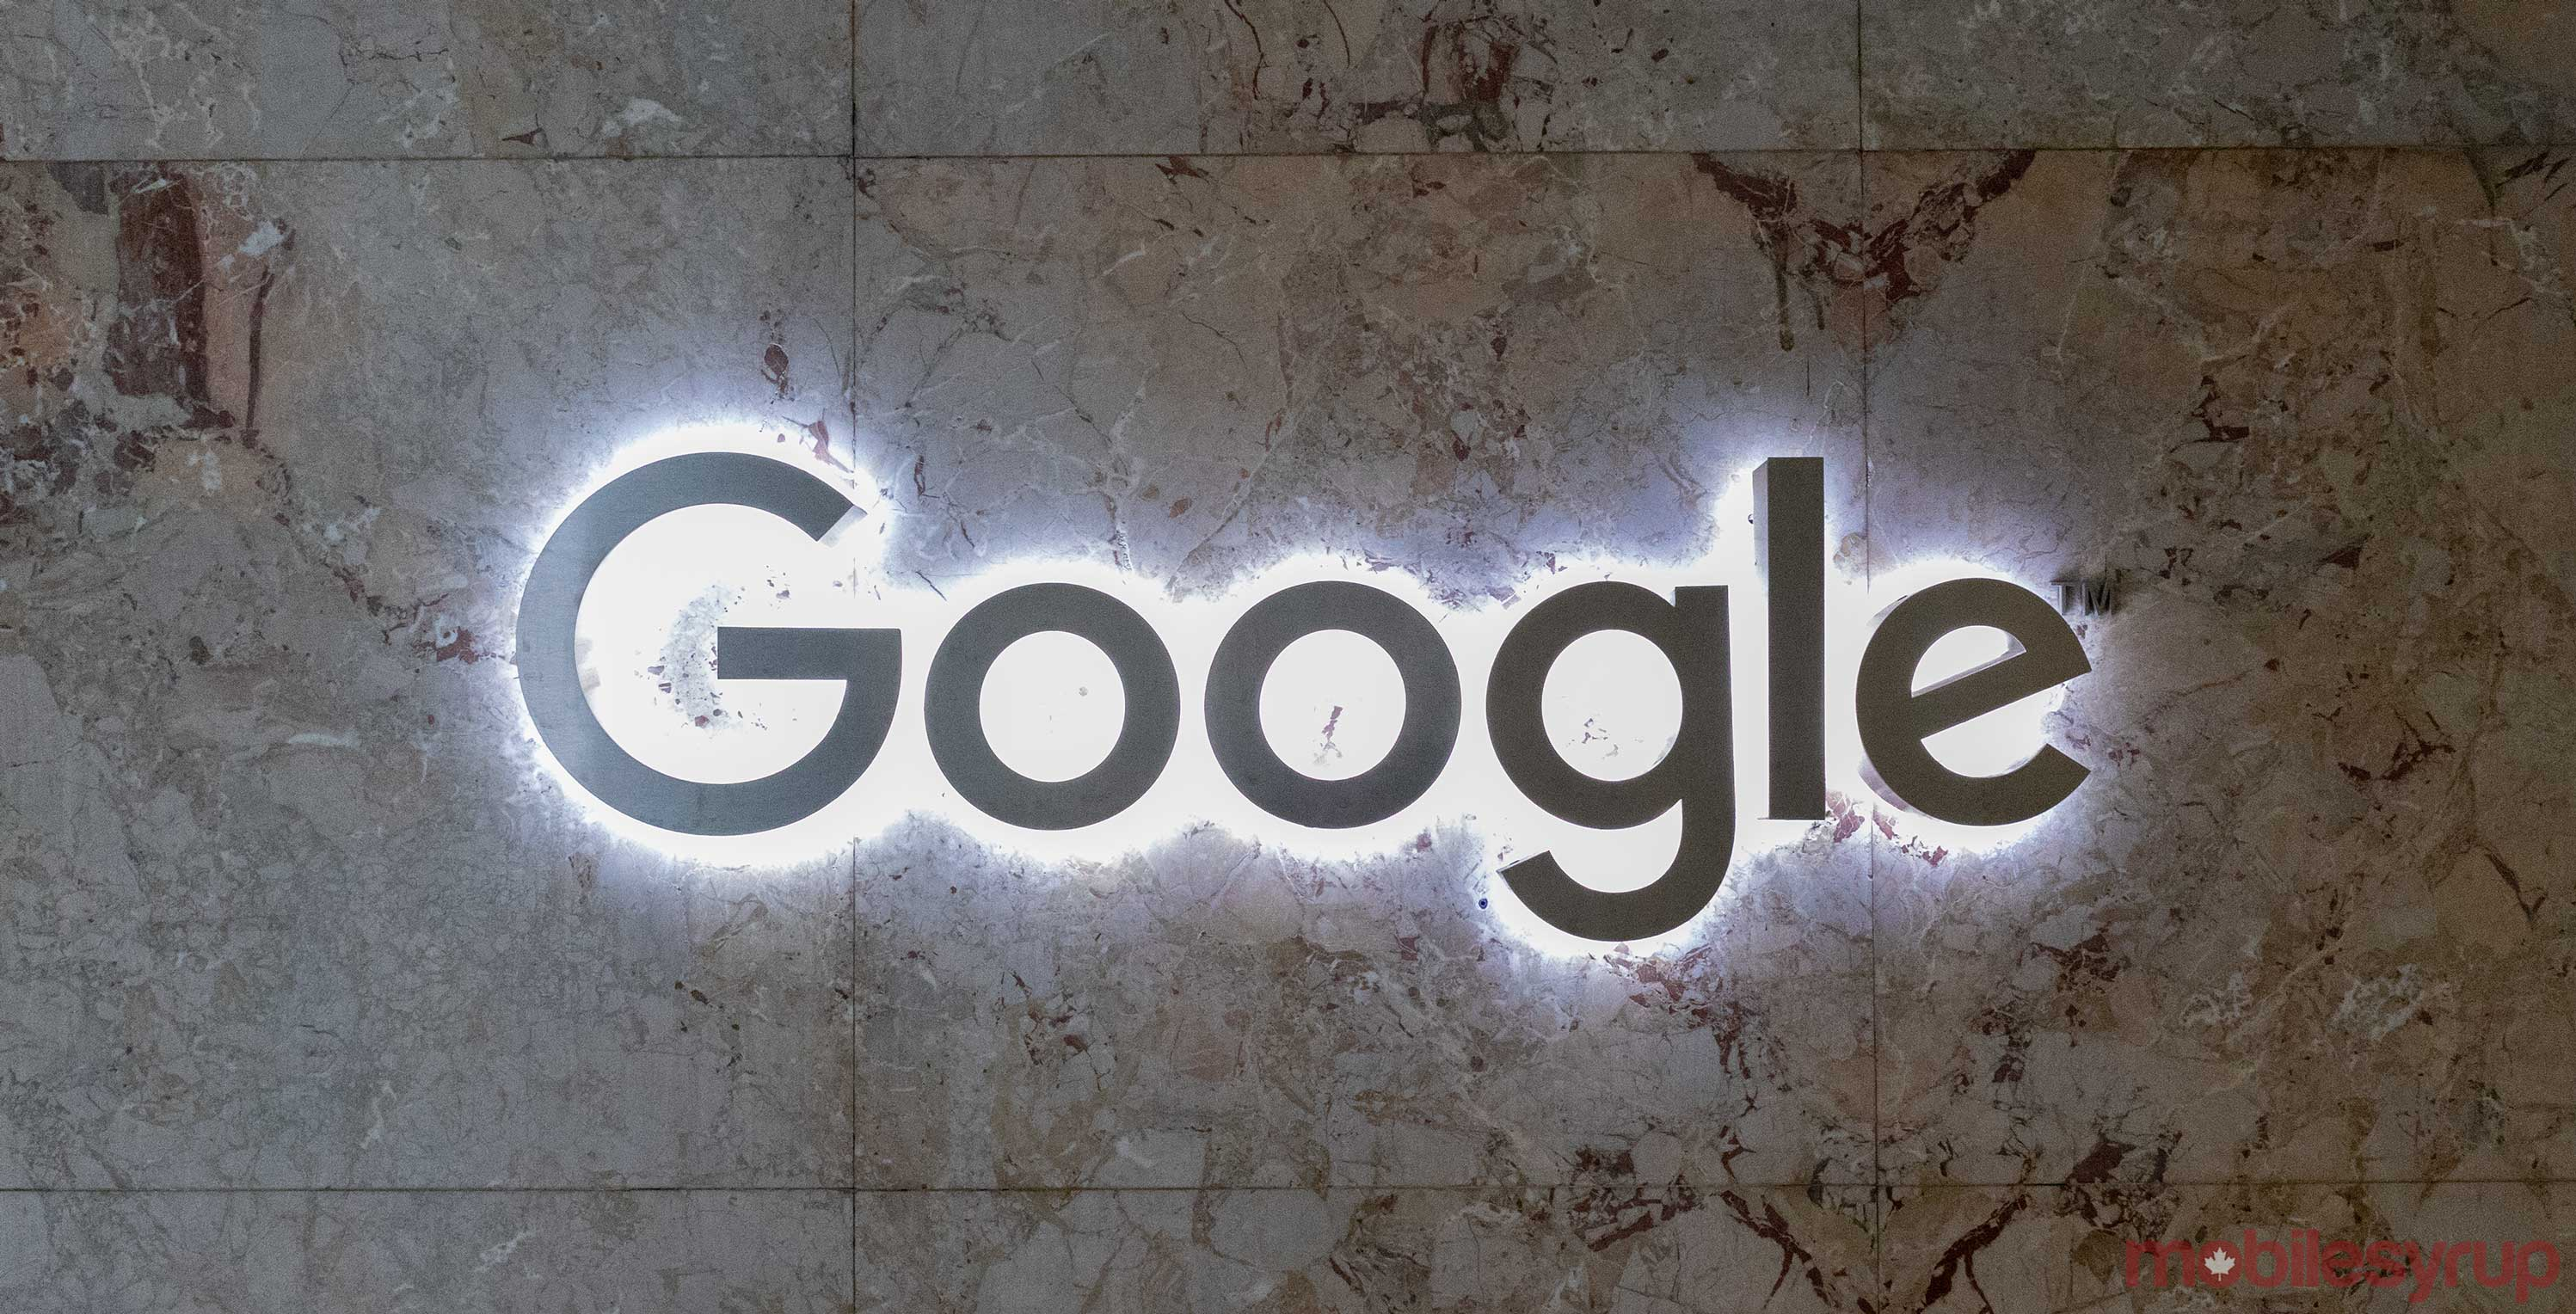 Google's App Security program has caught issues in 1 million apps in 5 years